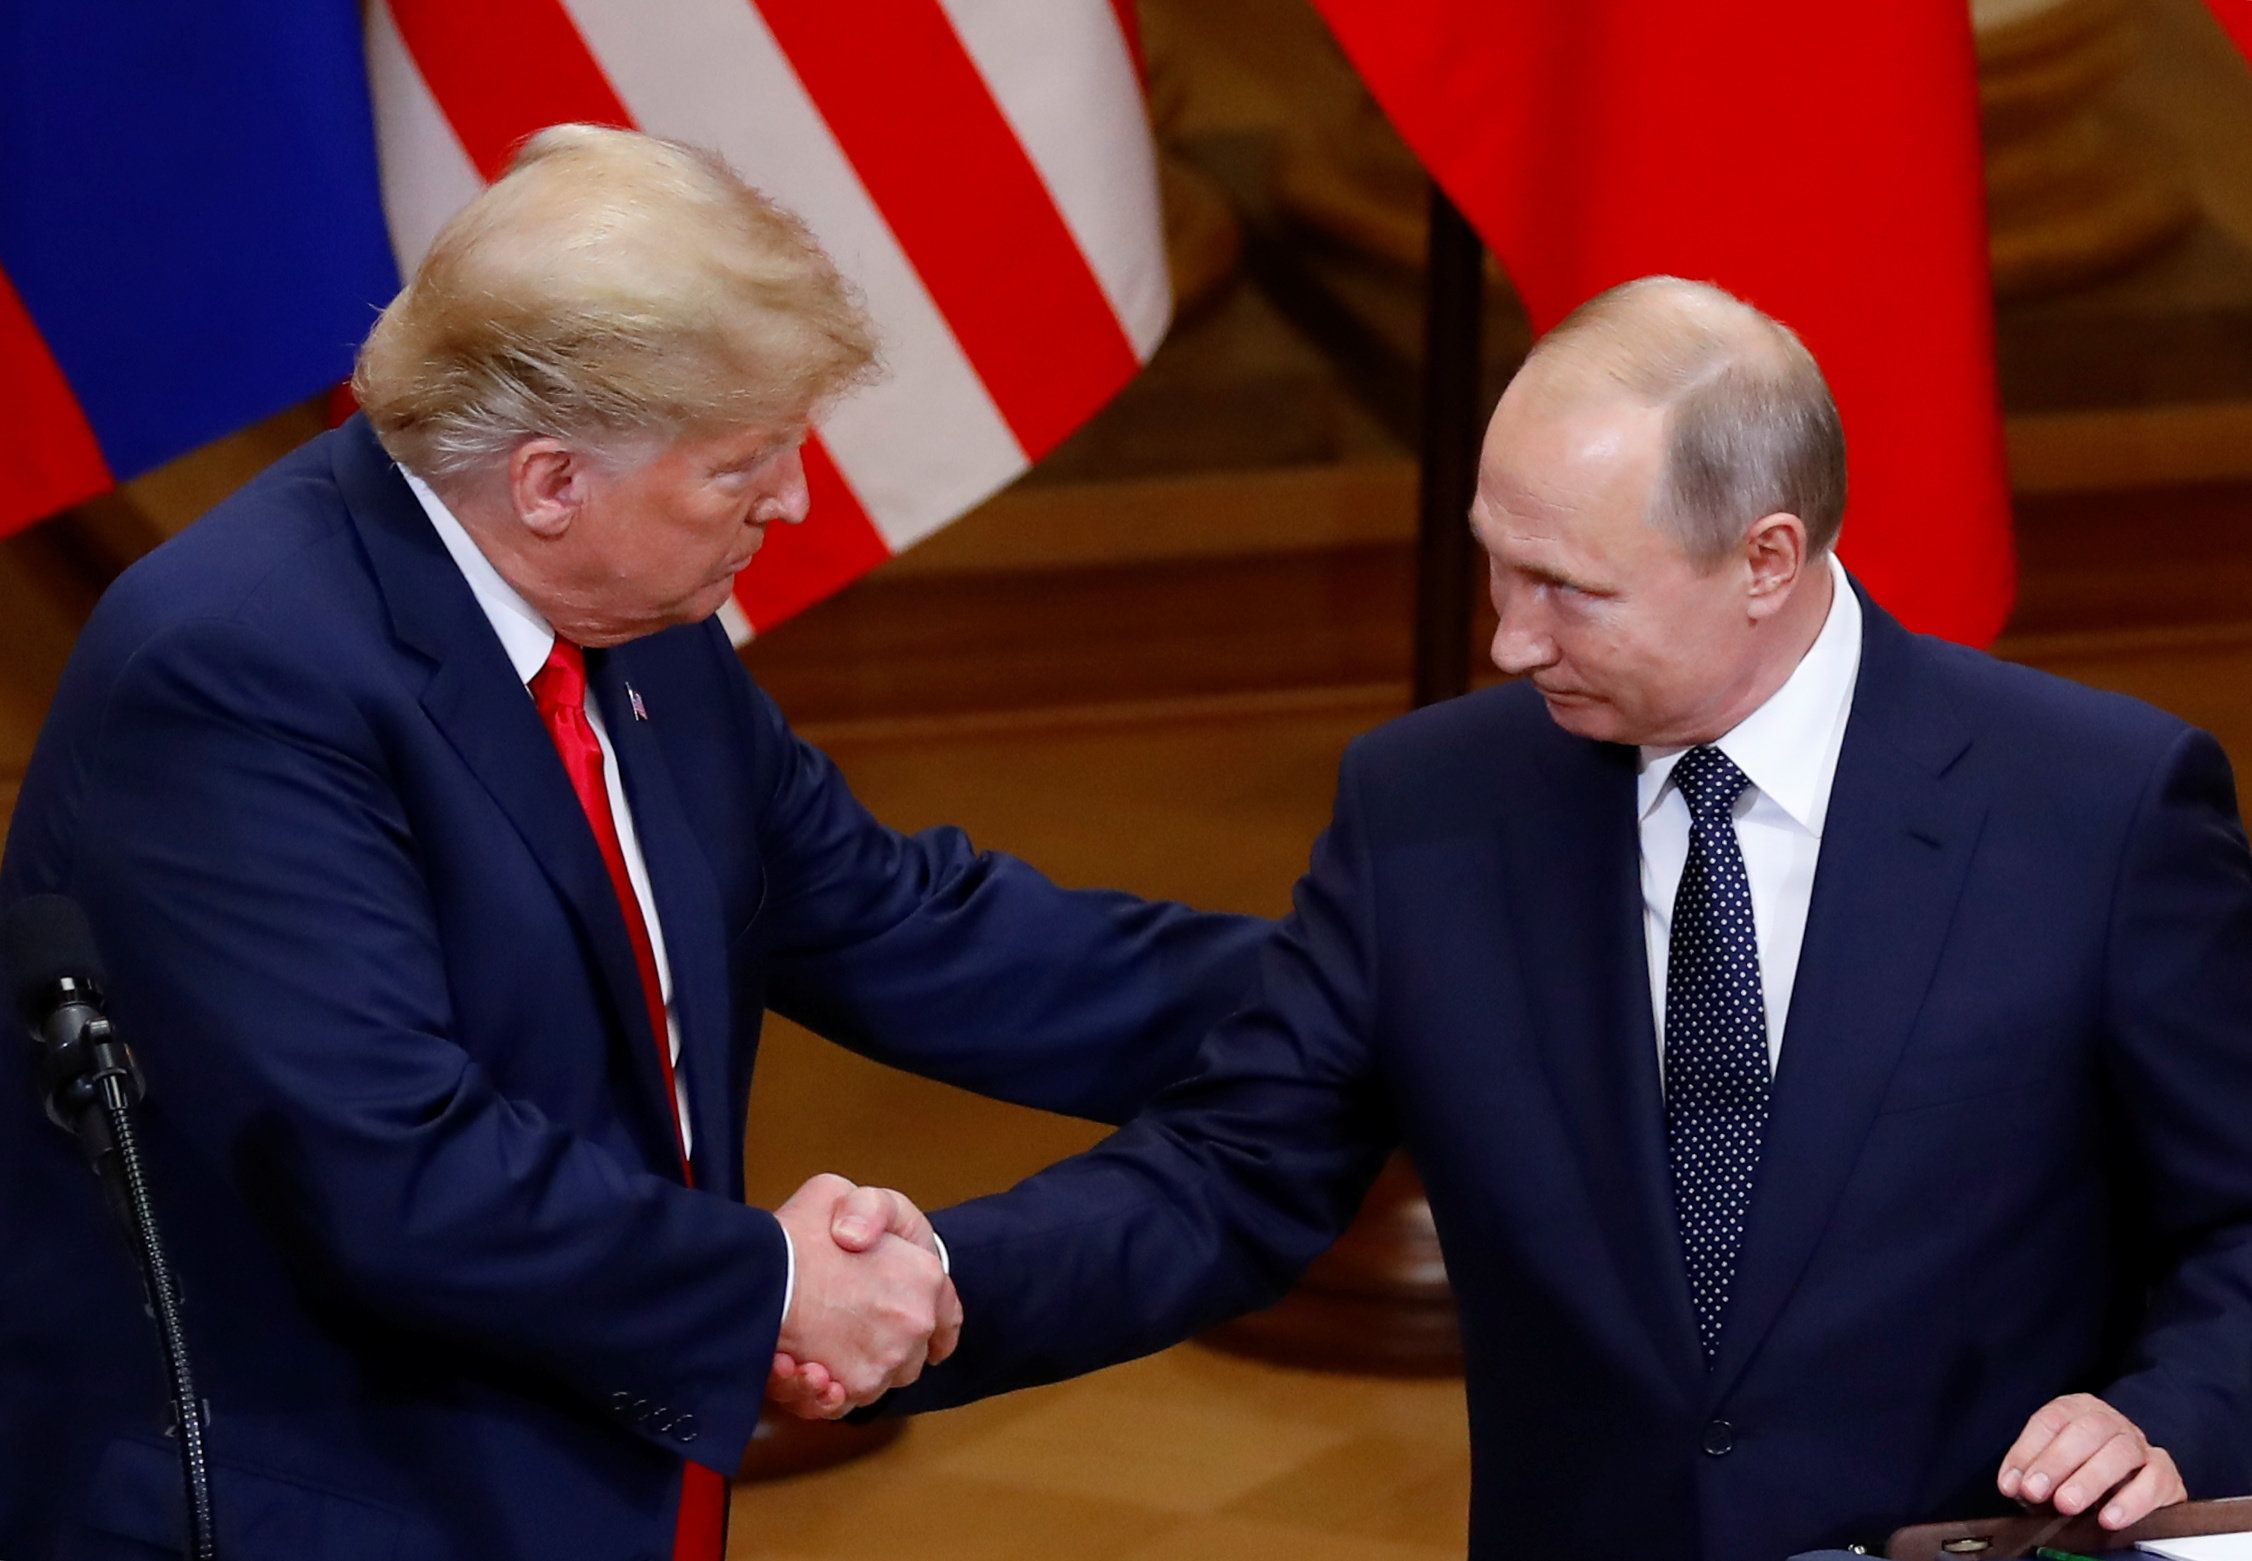 Putin summit brings end to frosty US-Russia relations